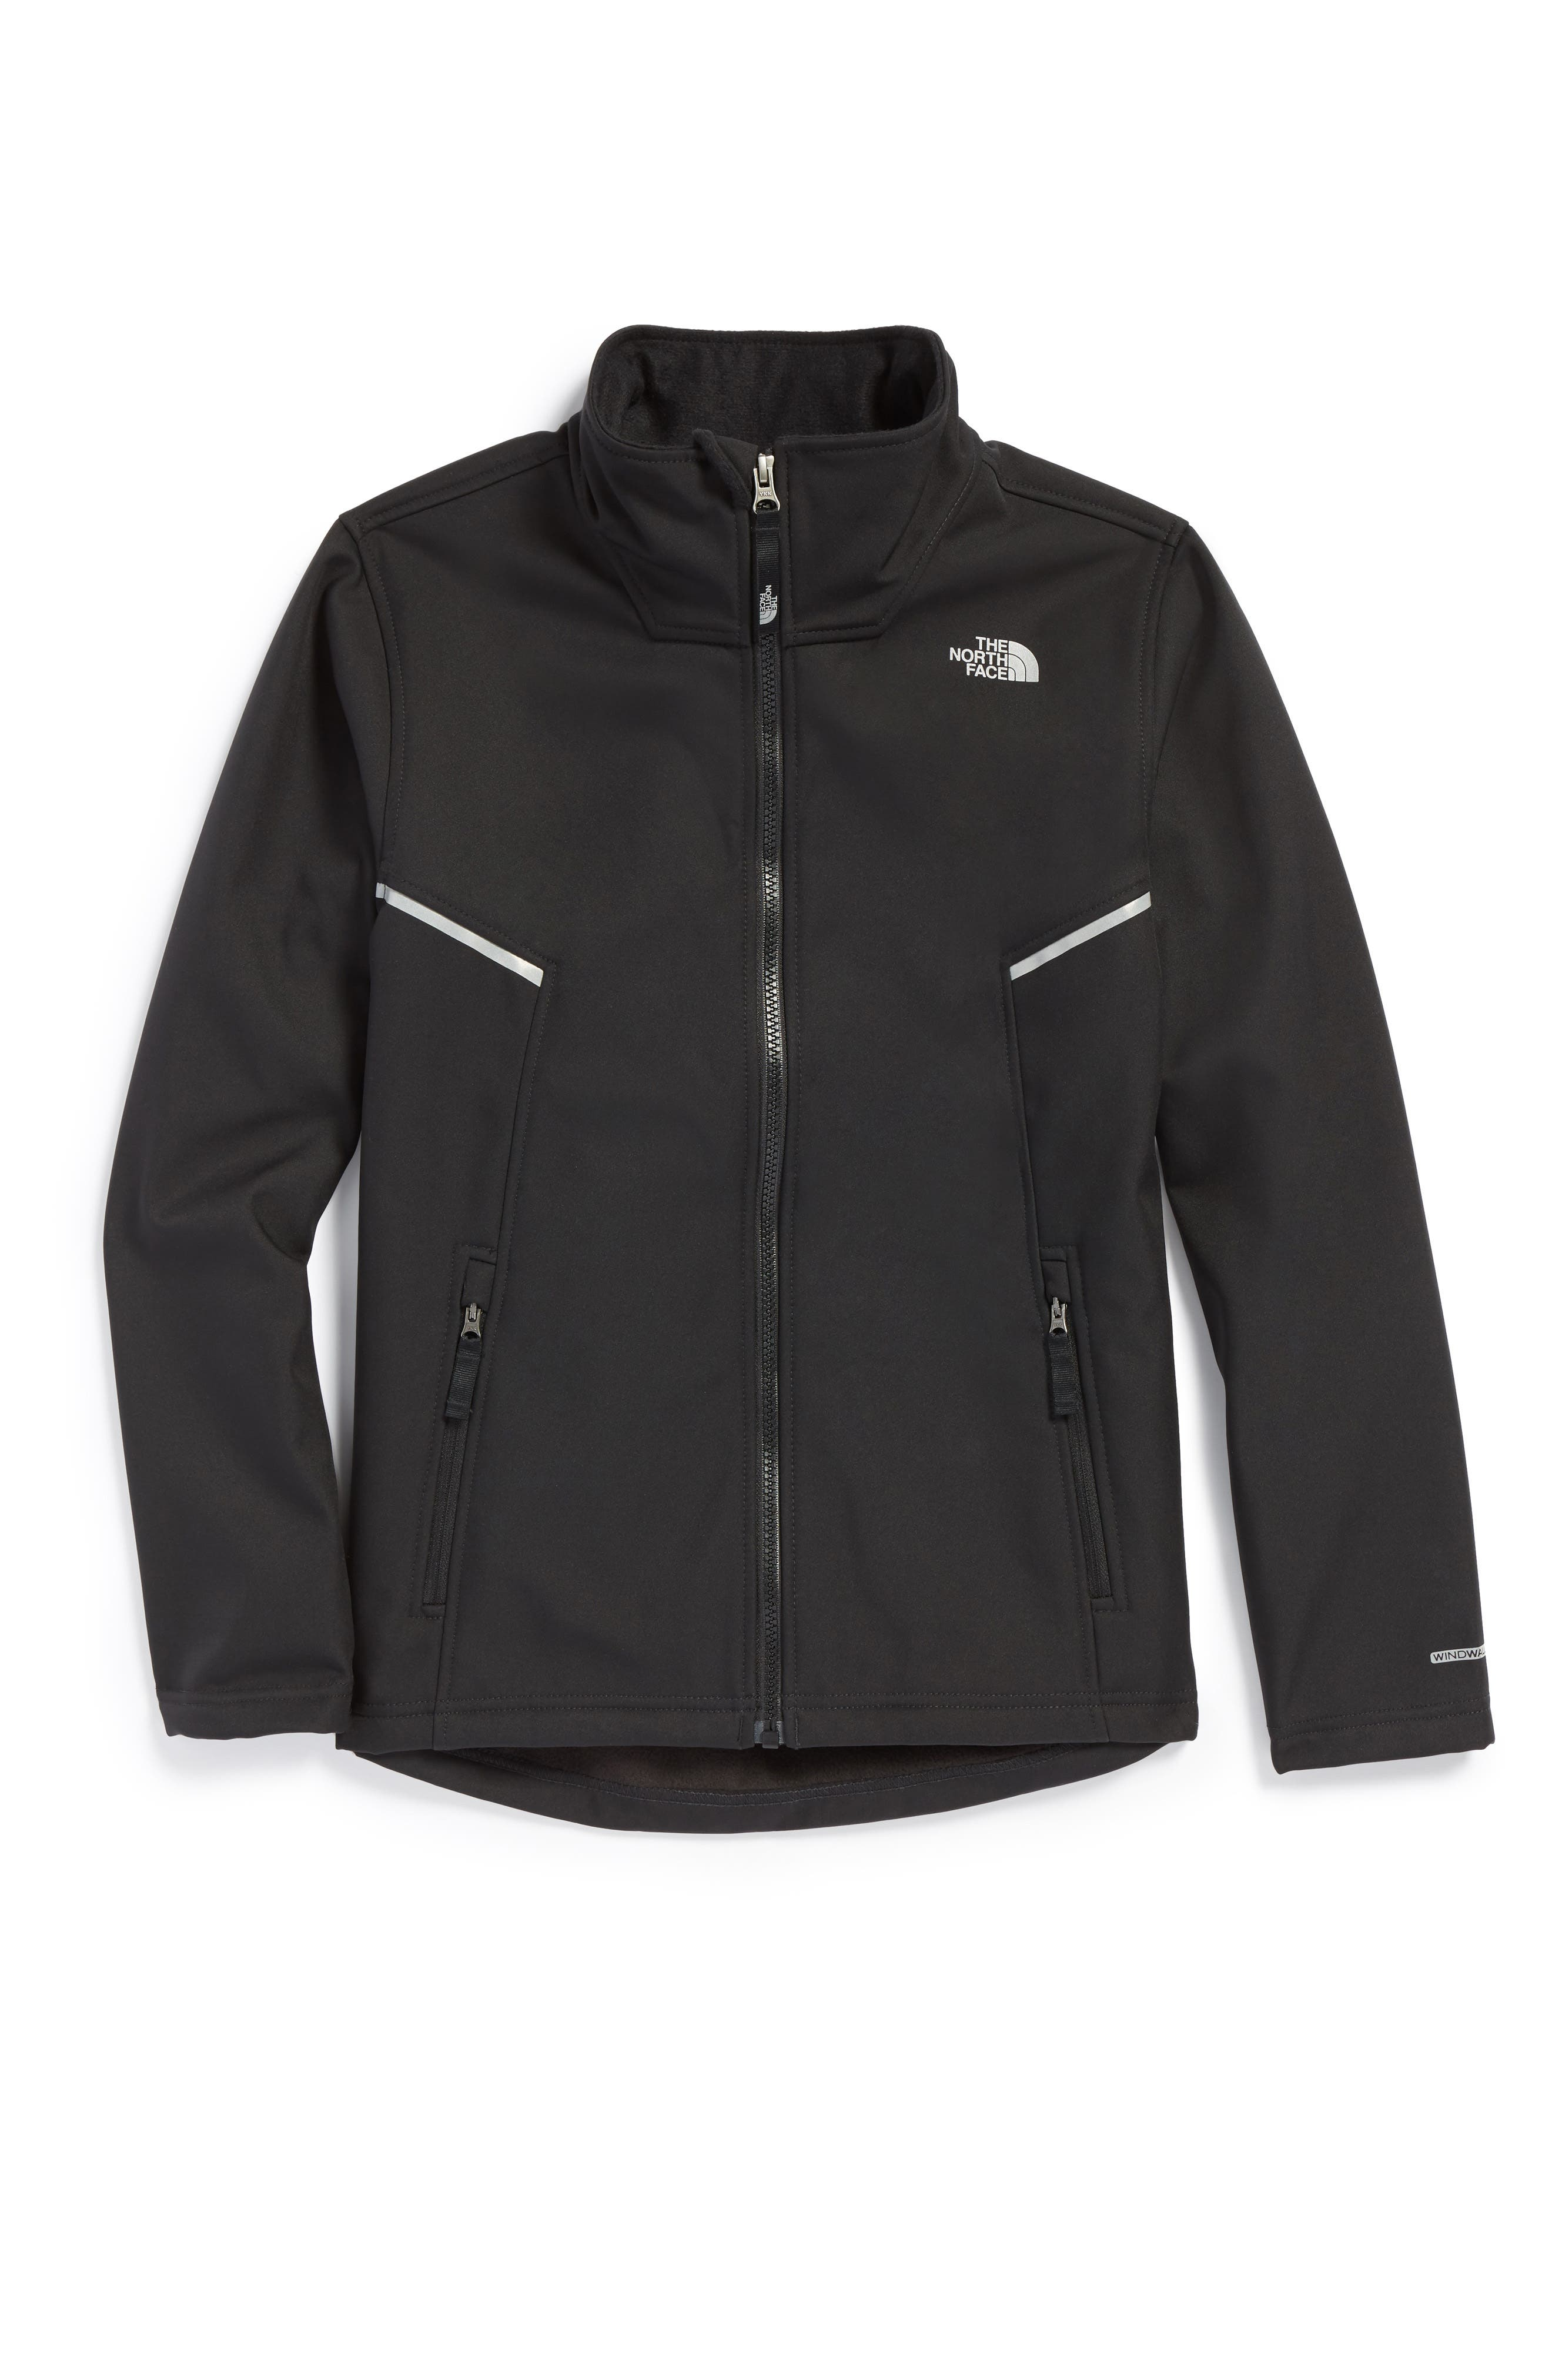 Main Image - The North Face Apex Bionic Water Repellent Jacket (Big Boys)